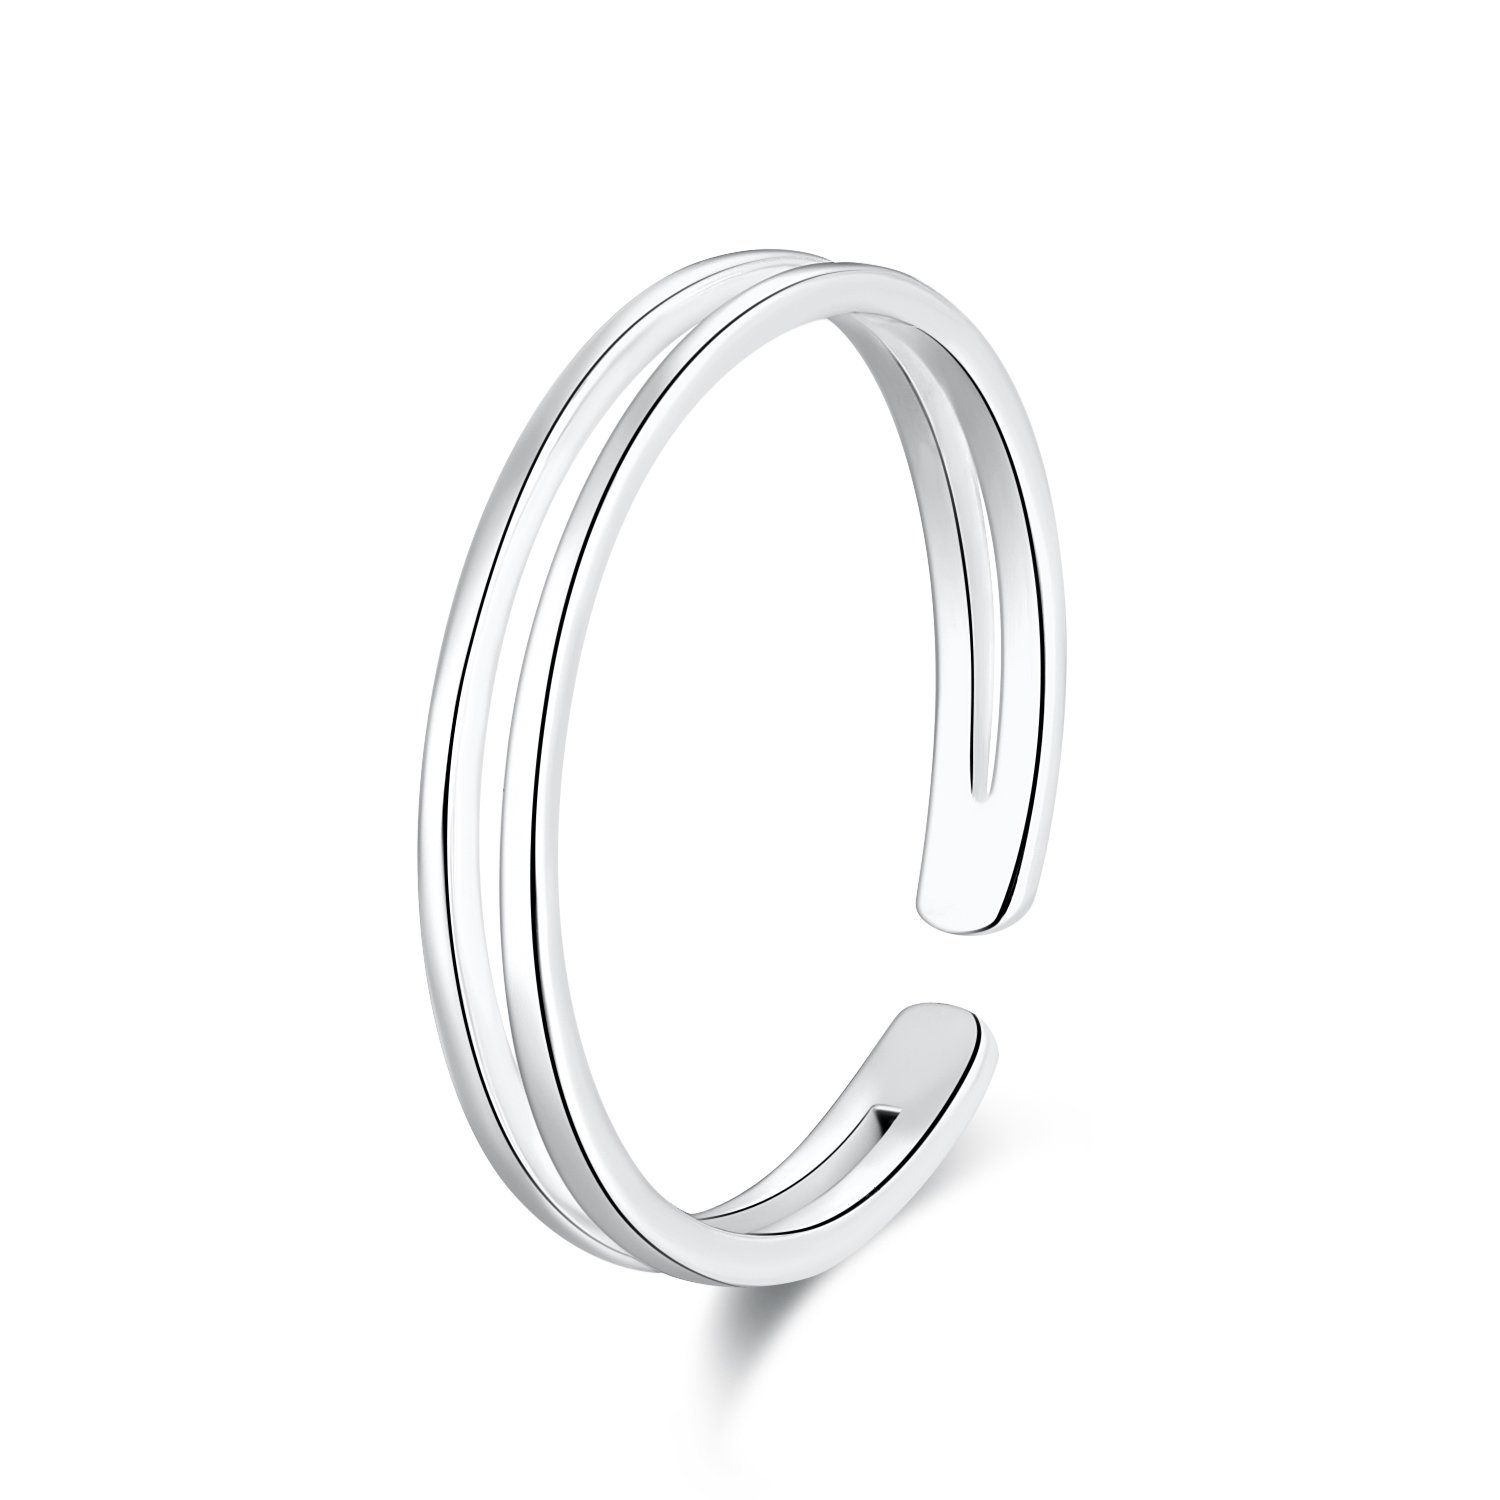 925 Sterling Silver Thin Line Minimalist Open Cuff Toe Ring Band Adjustable For Women Girls Size 2-4 Silbertale UK_B07D3542QH